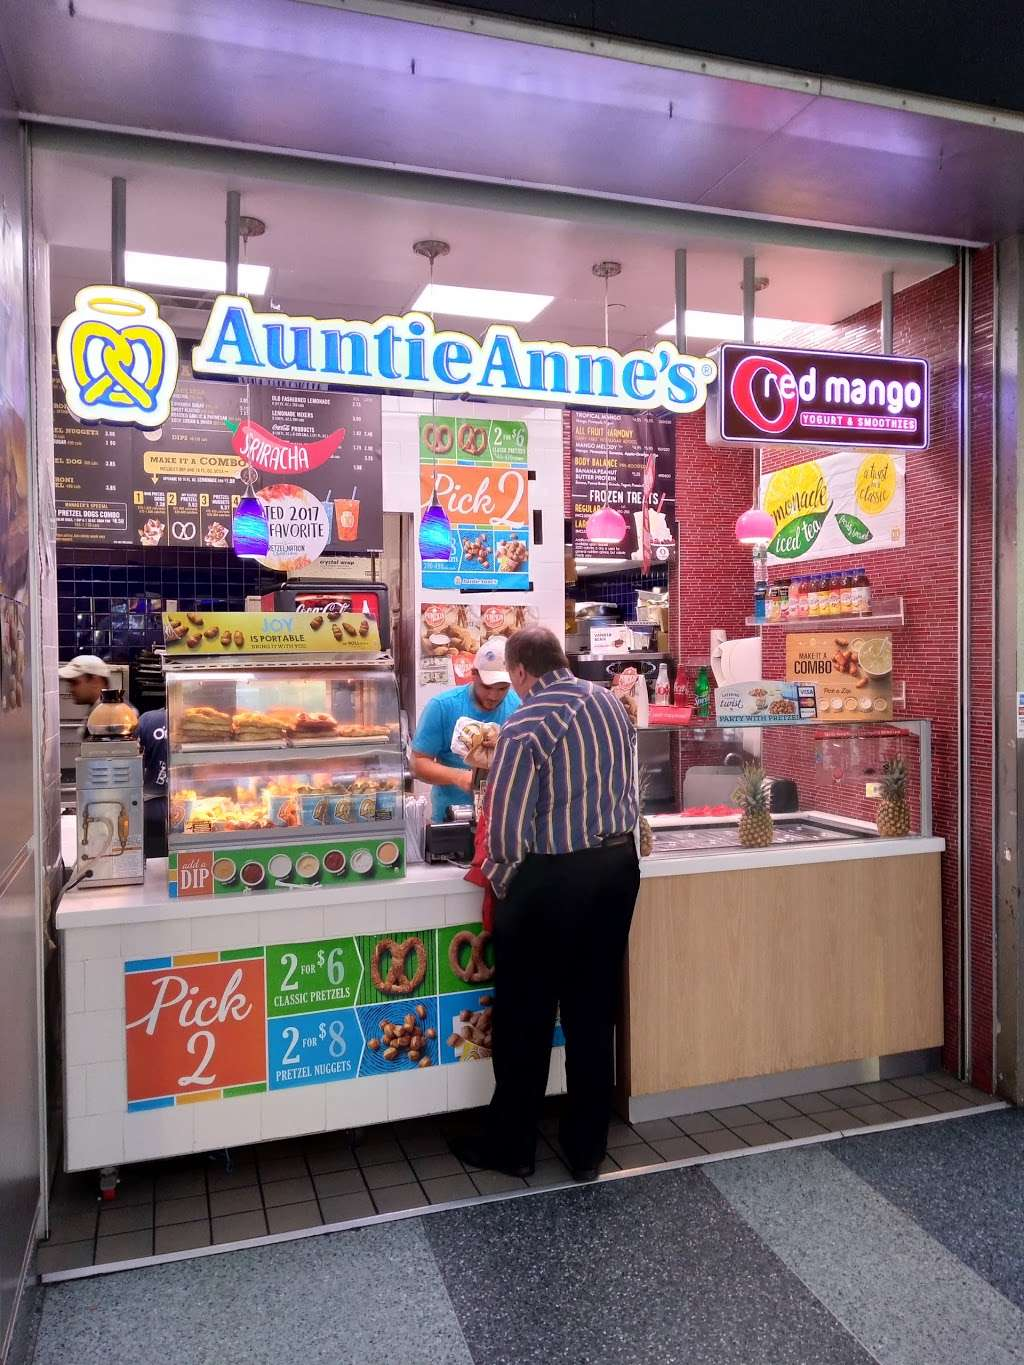 Auntie Annes - cafe  | Photo 5 of 8 | Address: 4 South St, New York, NY 10004, USA | Phone: (631) 574-7700